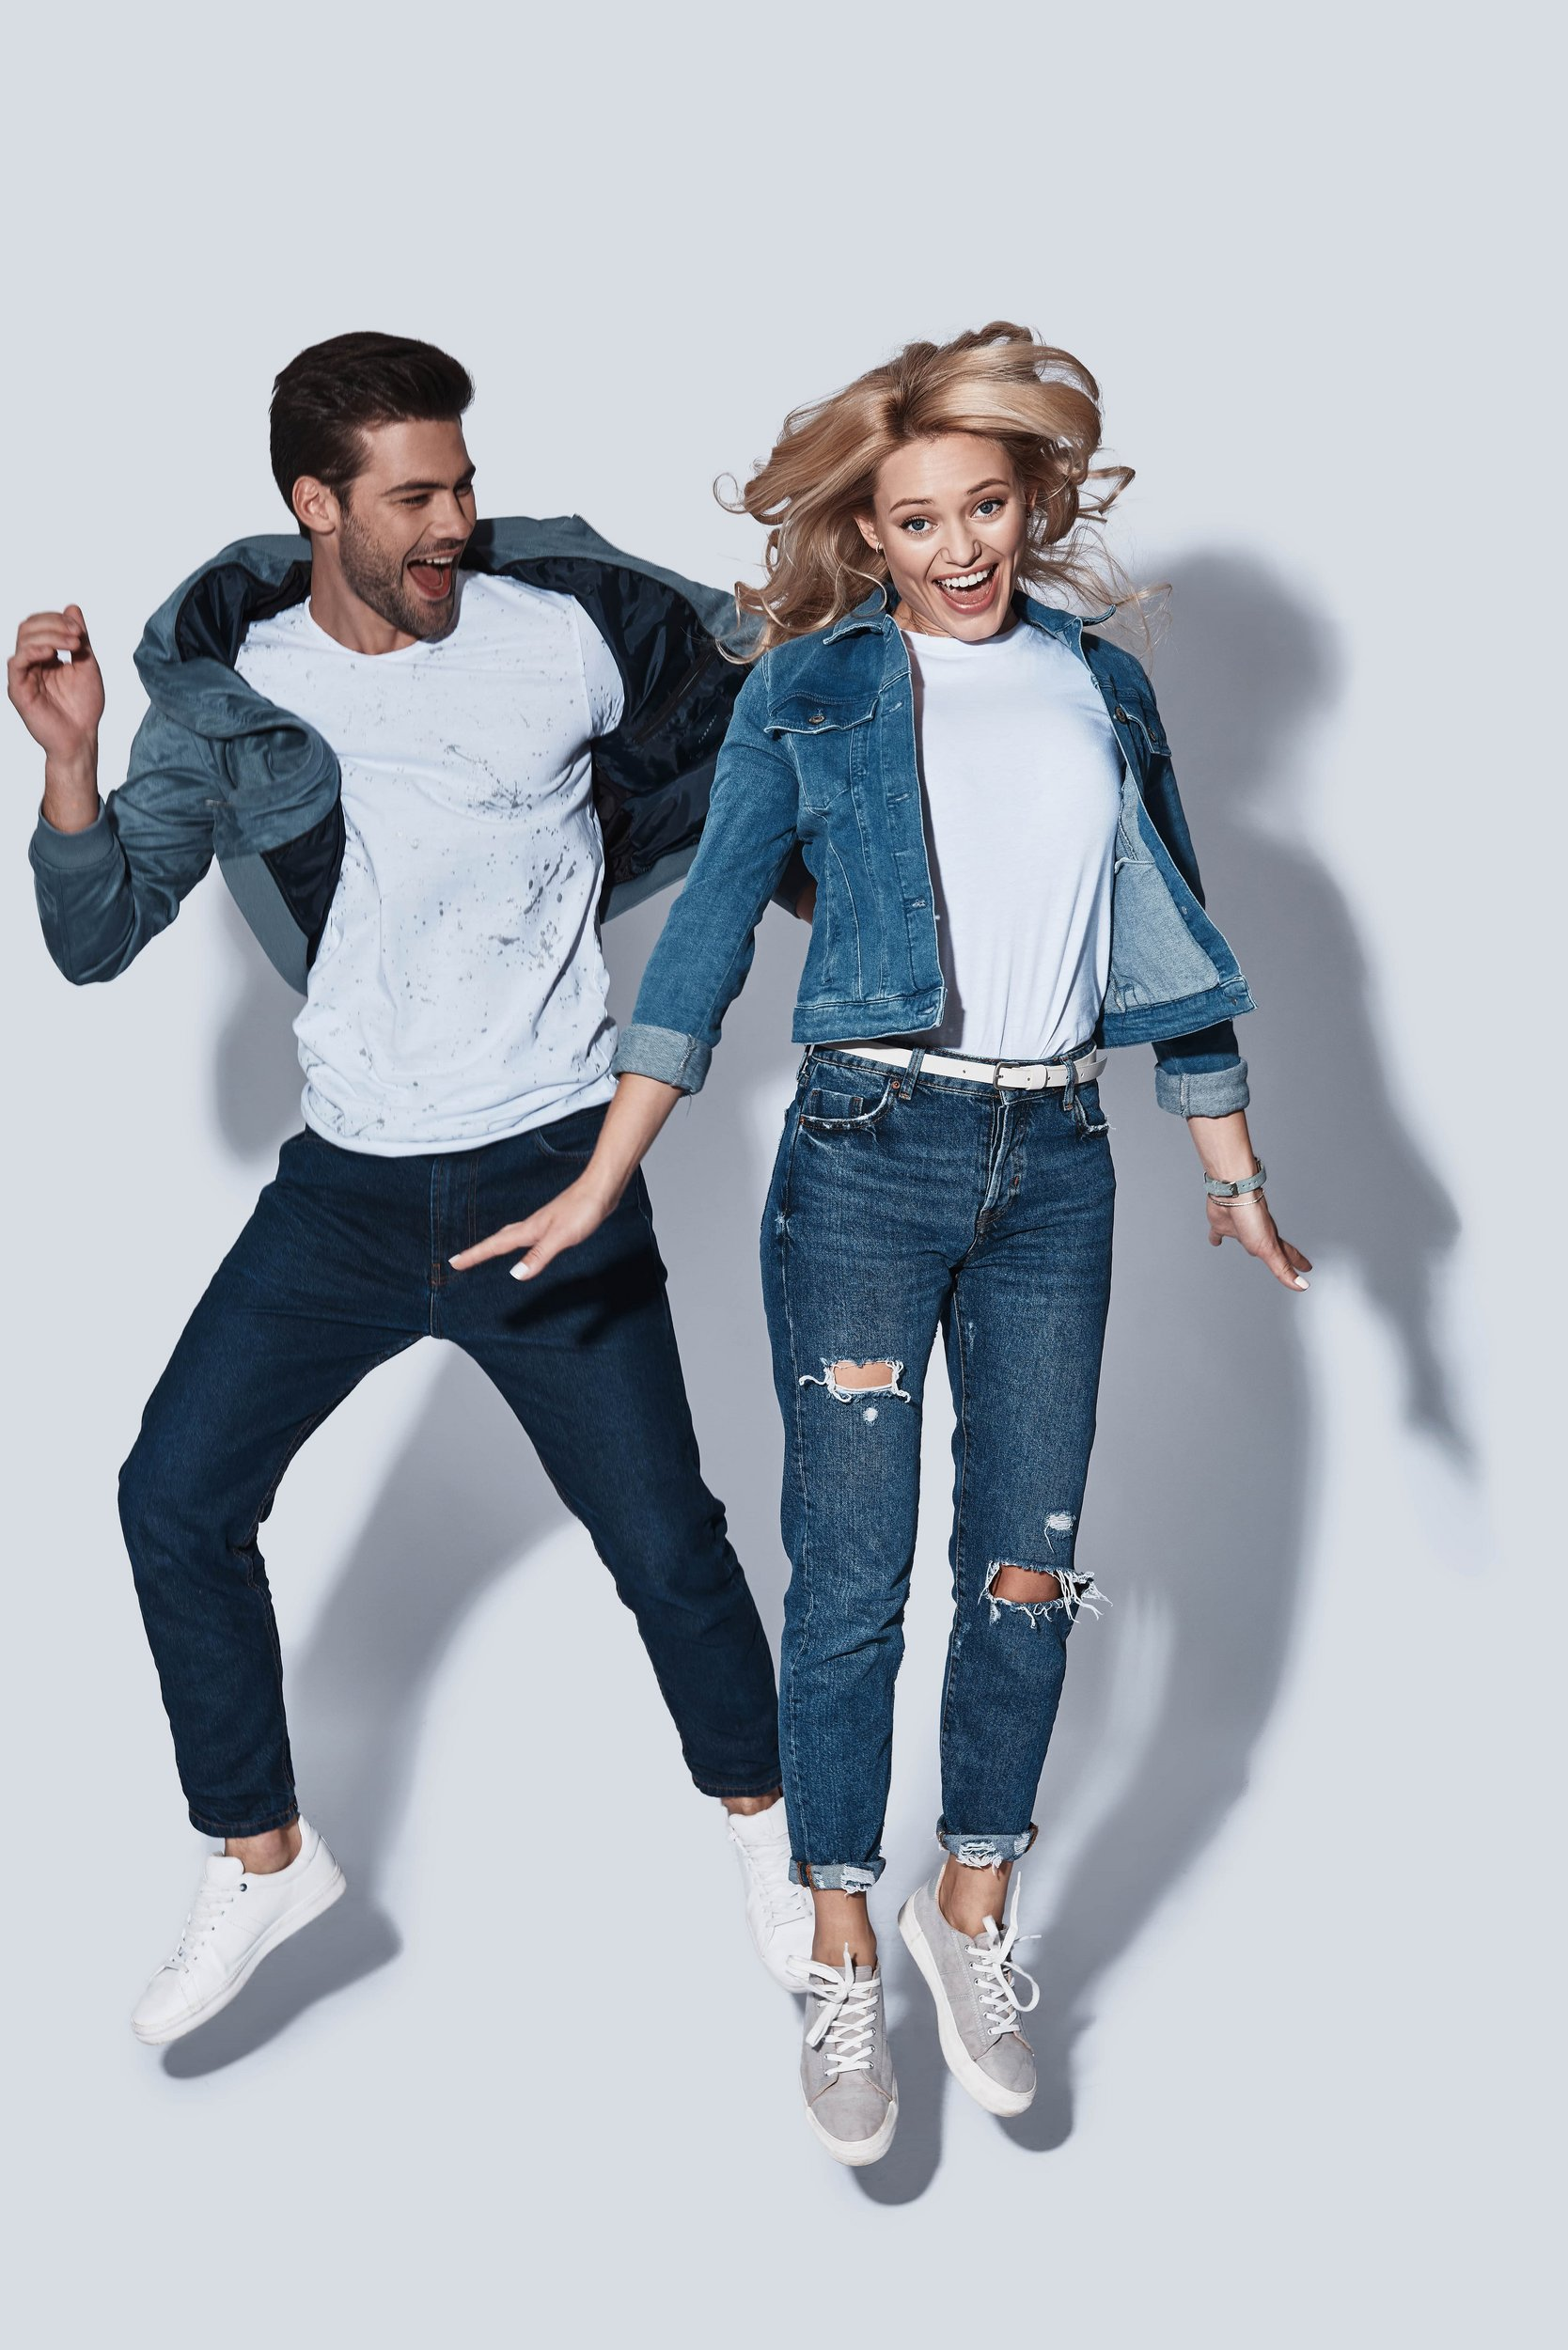 Jeans combinations at Supernova Karlovac